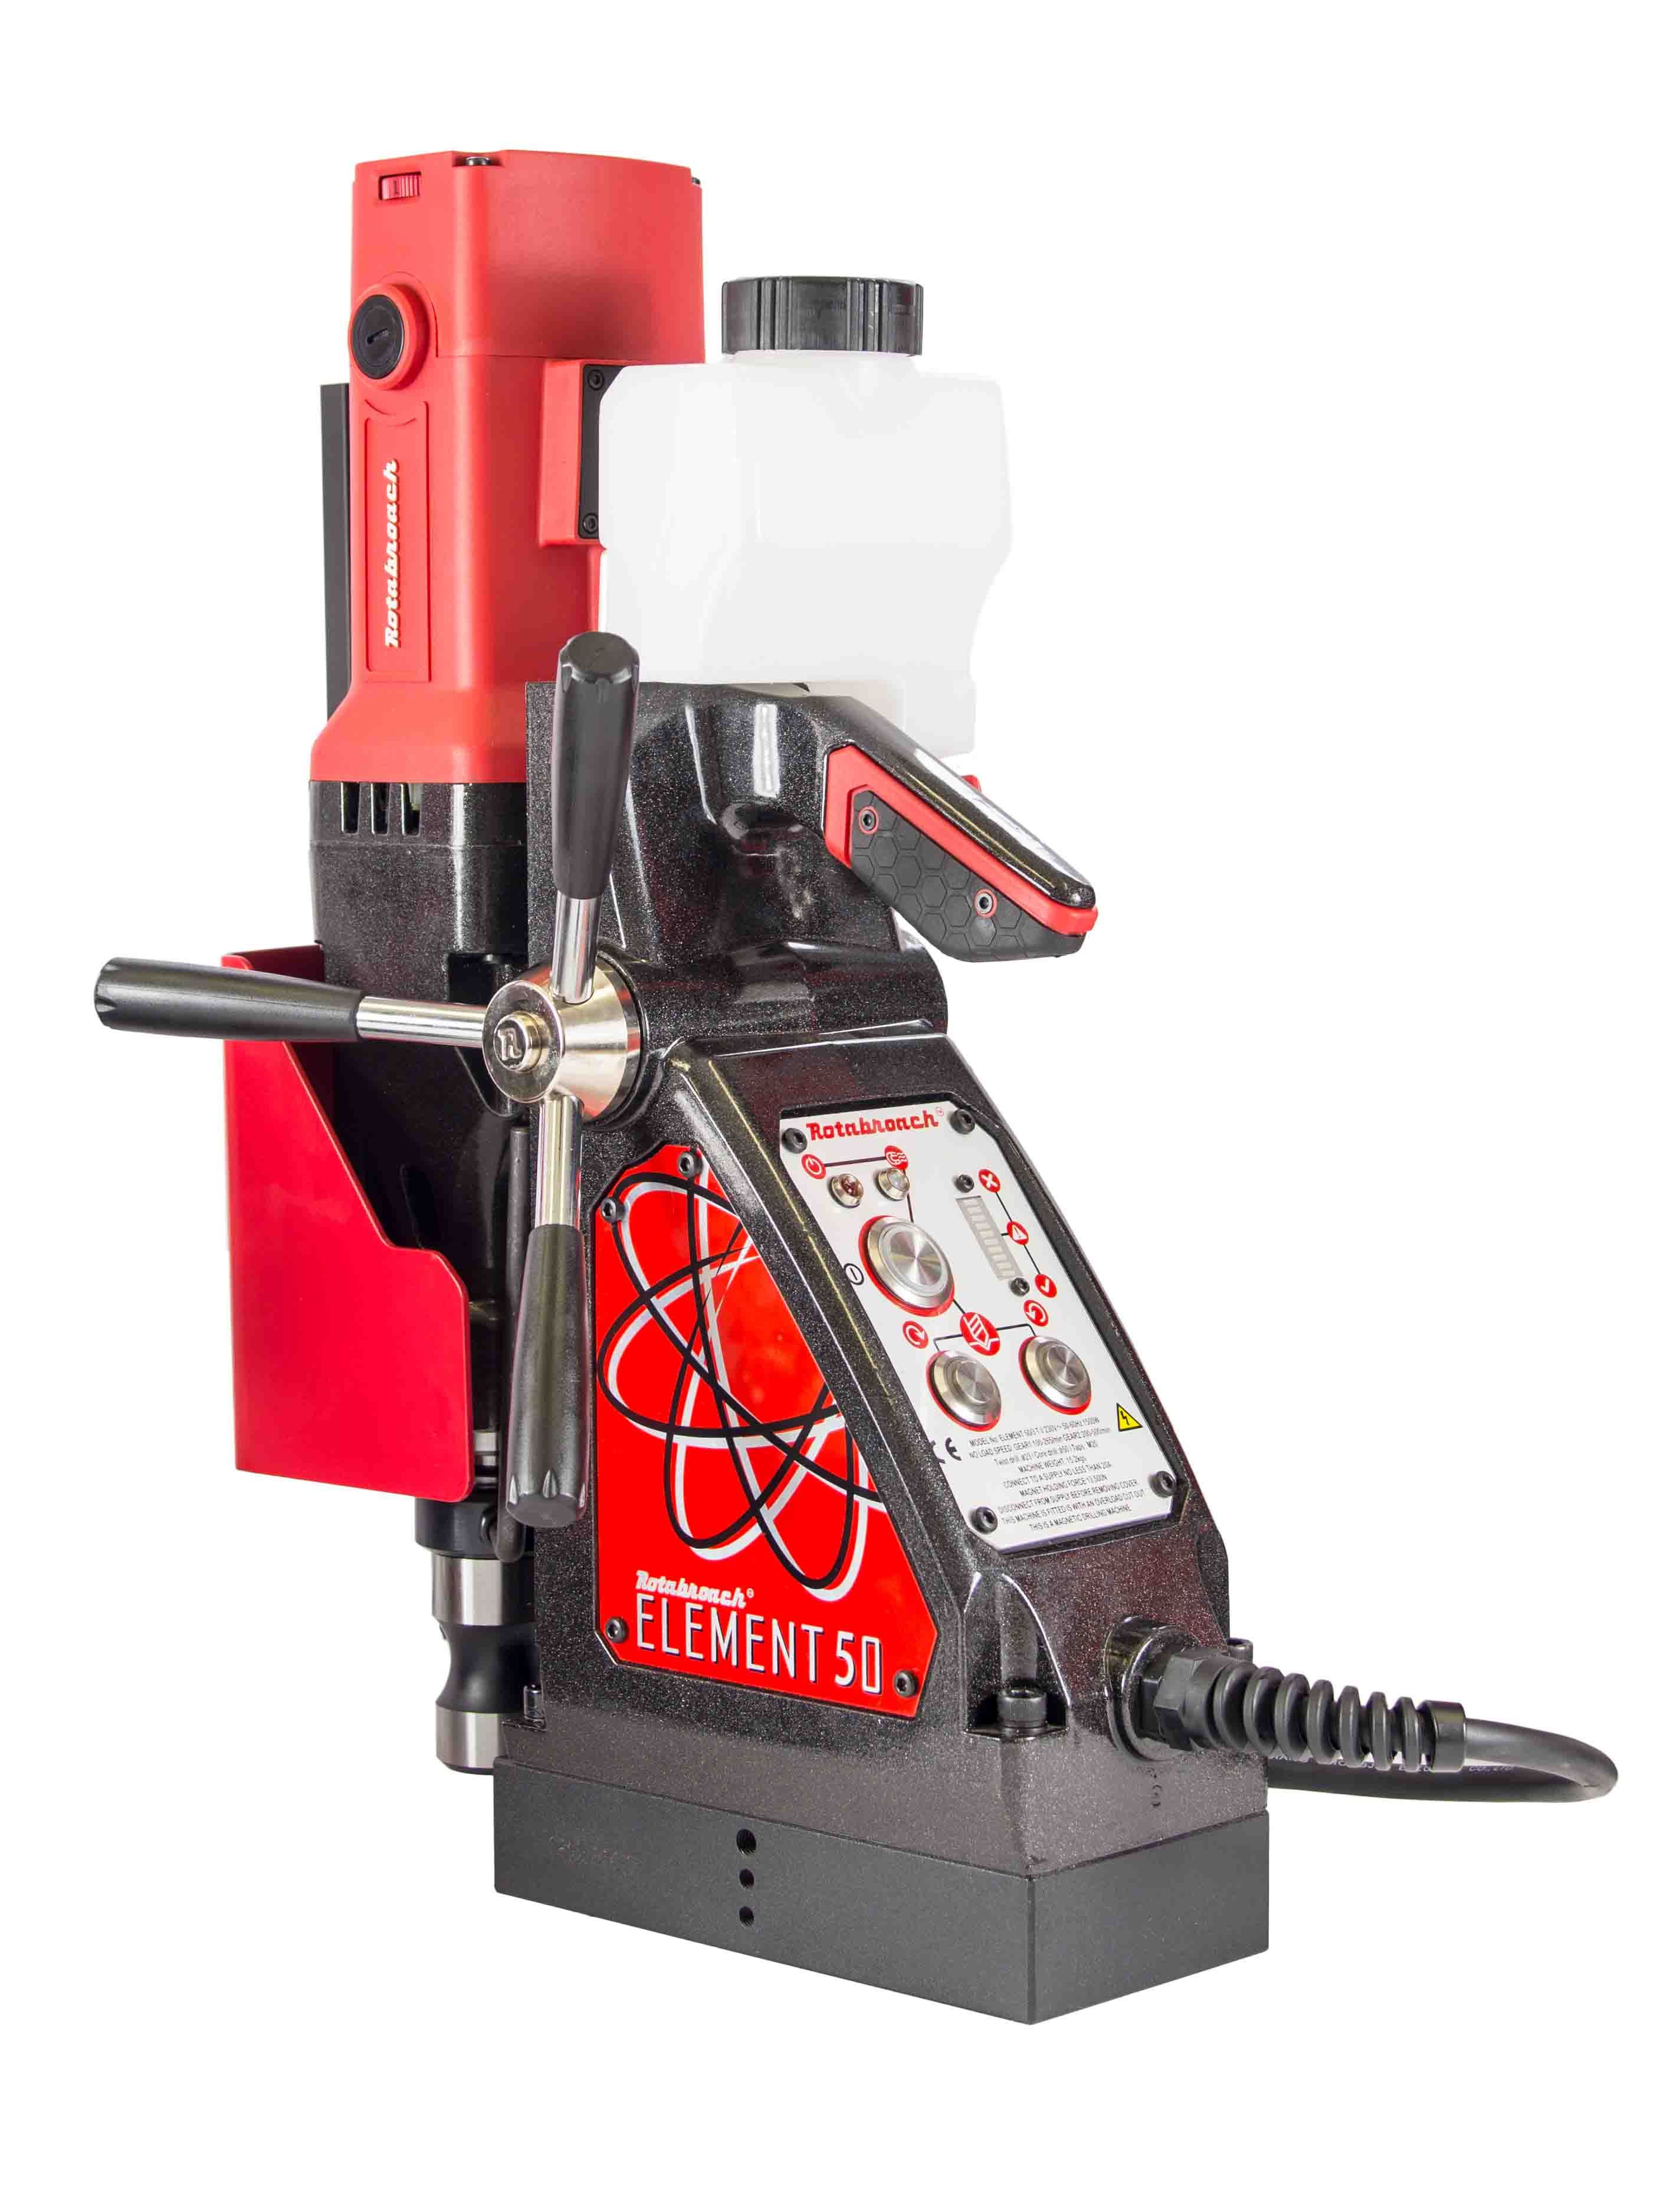 Rotabroach Element 50 1500w 50mm Magnetic Drill